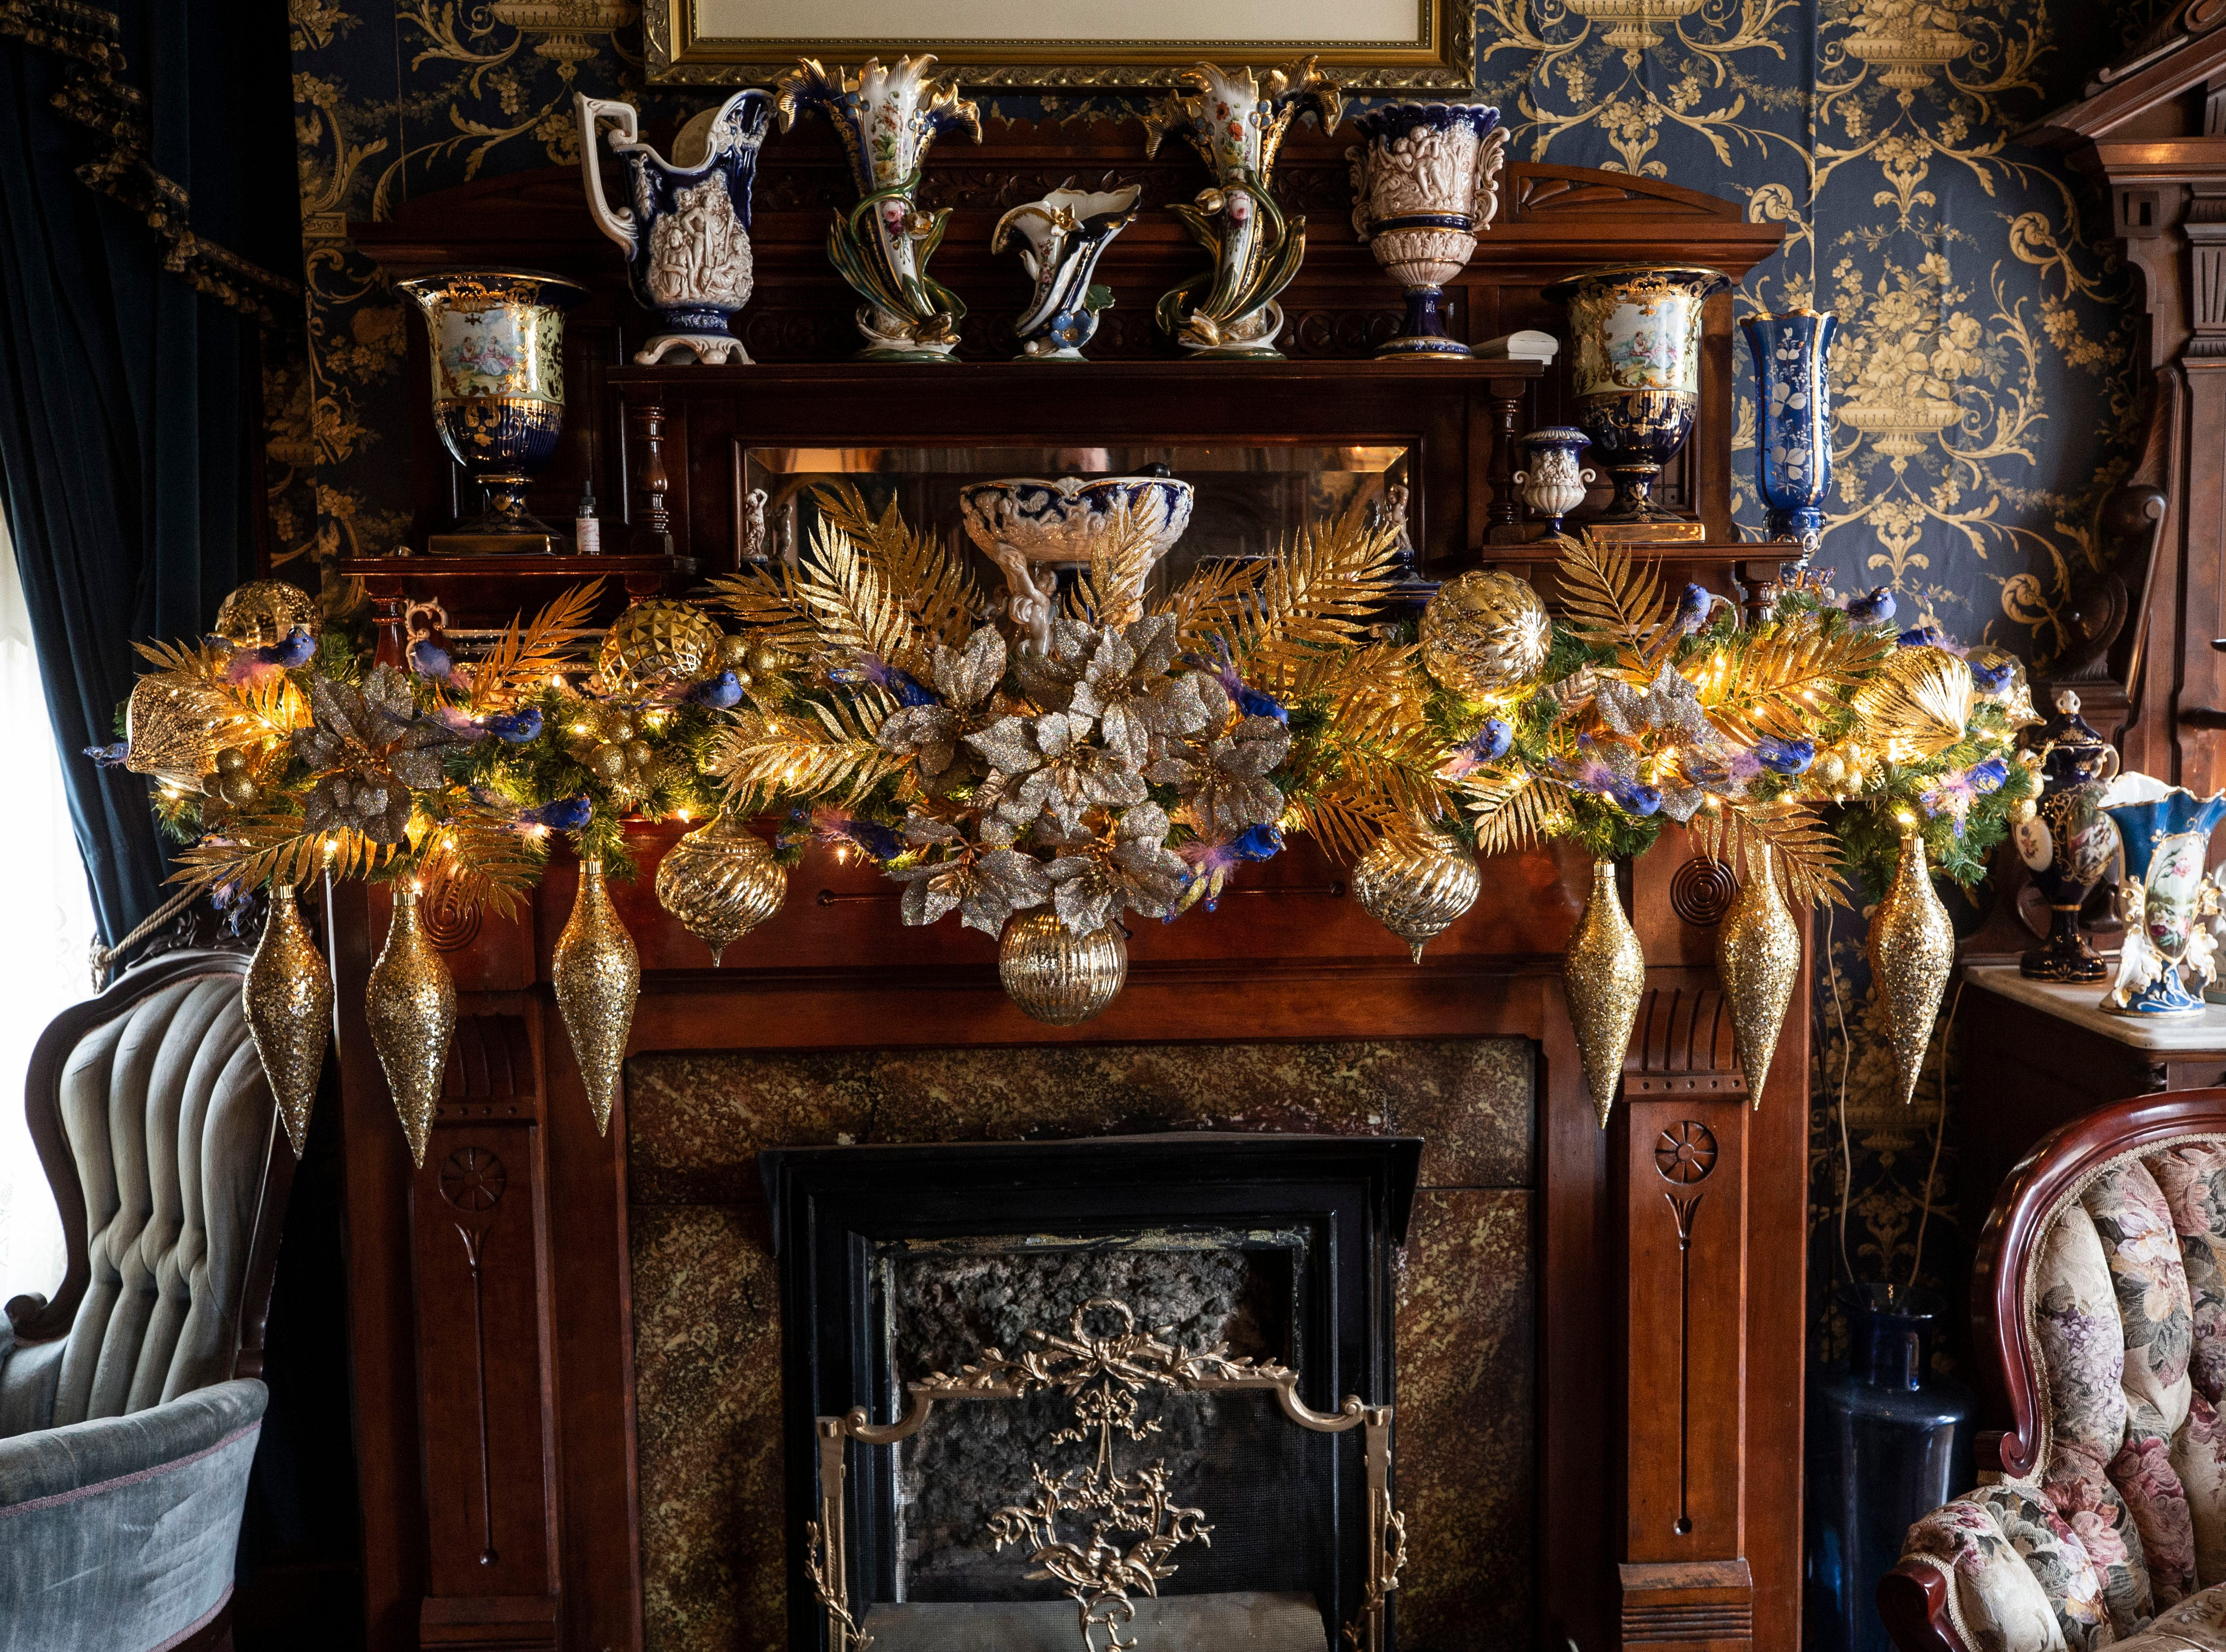 """""""Holidays are my favorite, favorite time. It's fantastic,"""" said homeowner David Brown. A fireplace mantel is decorated with golden ornaments and garland as Victorian-era chairs flank each side."""